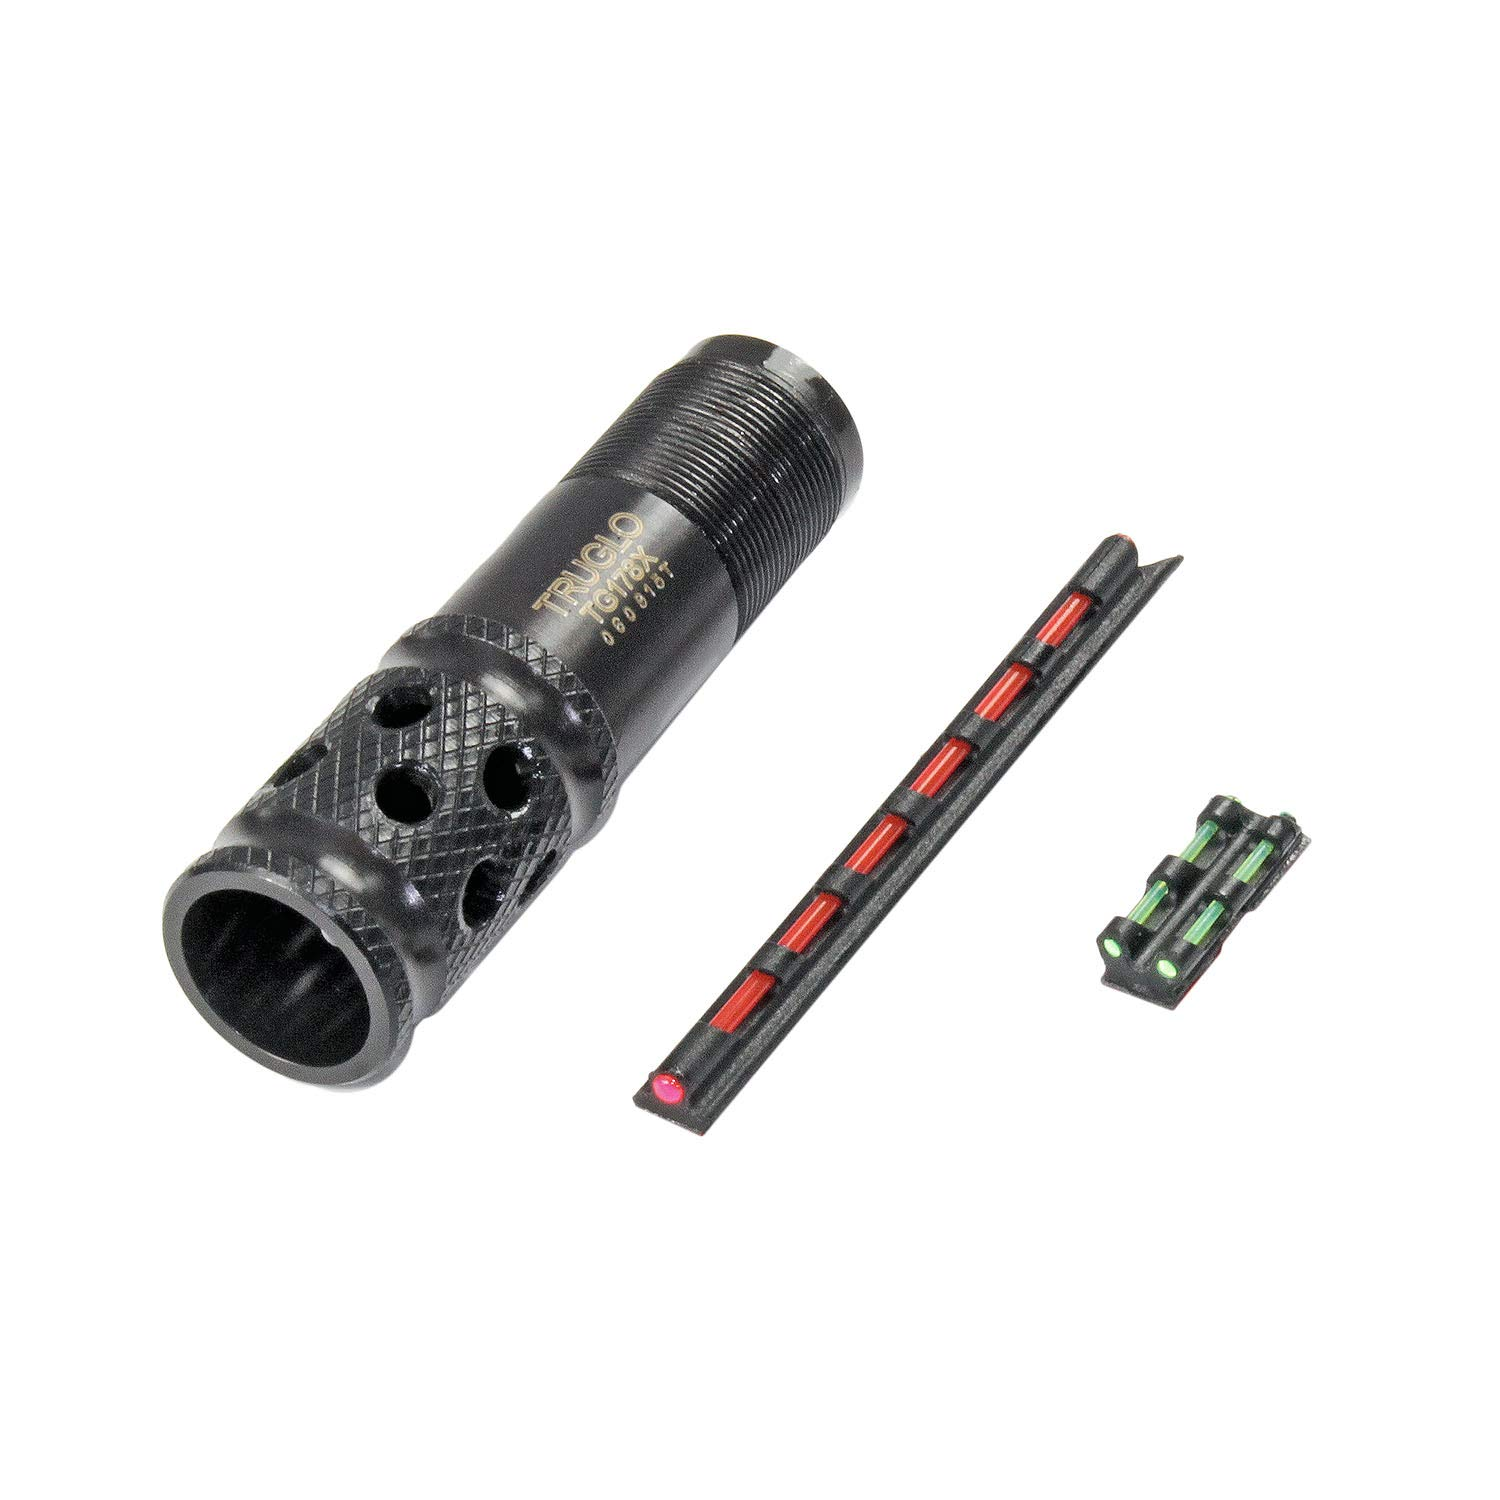 TRUGLO Gobble-Stopper Xtreme Shotgun Choke Tube Combo - Includes Universal-Fit Fiber Optic Sight, Mossberg 20 Gauge